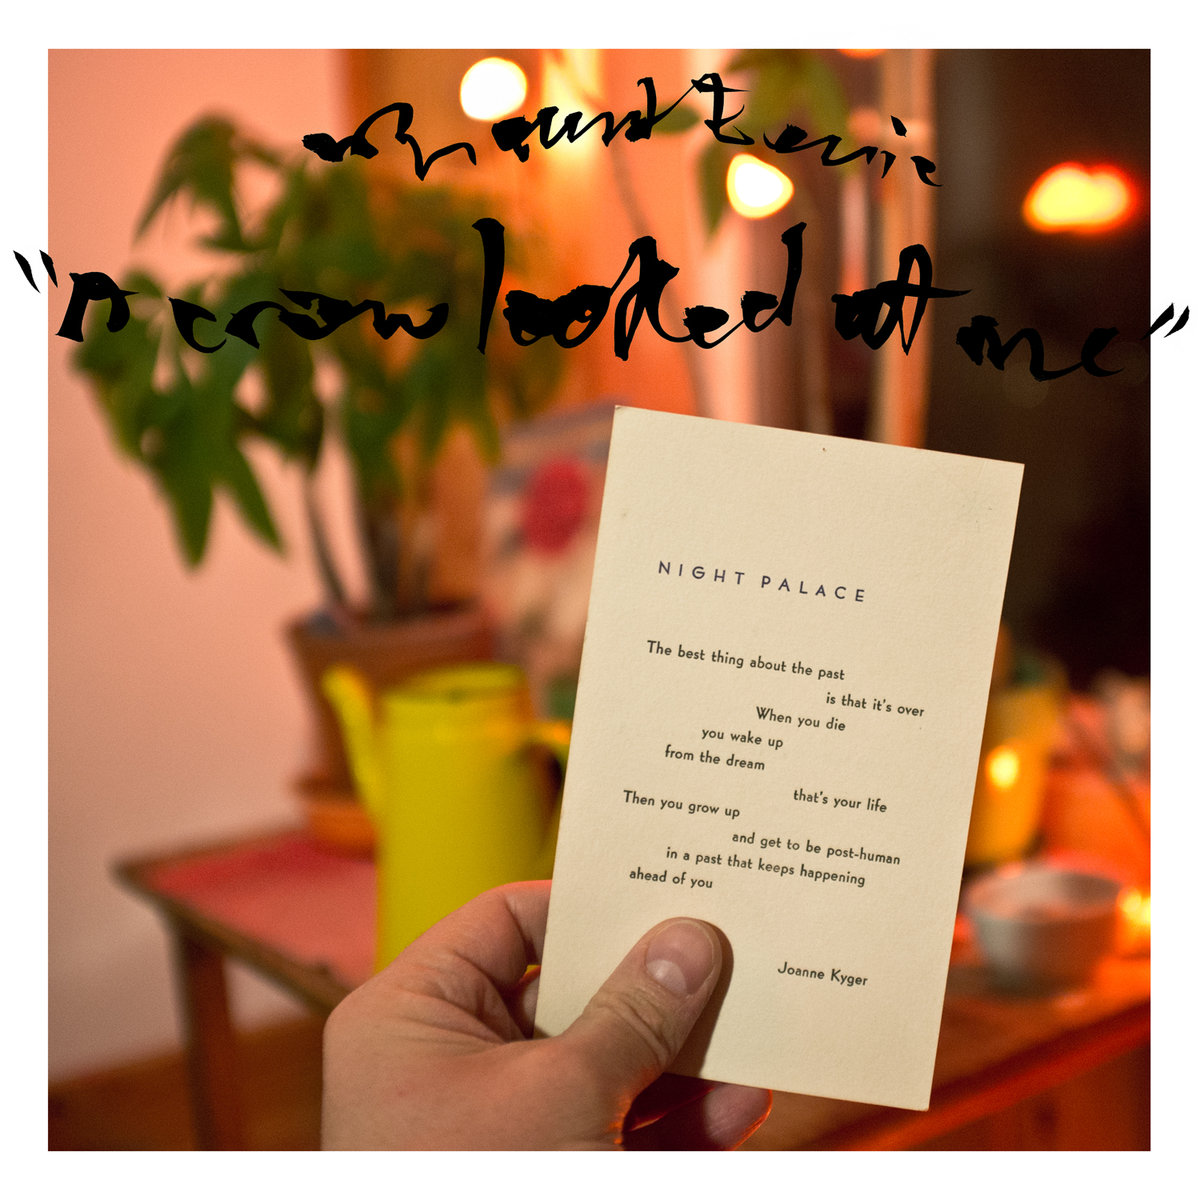 #7 A Crow Looked At Me, Mount Eerie - On album opener